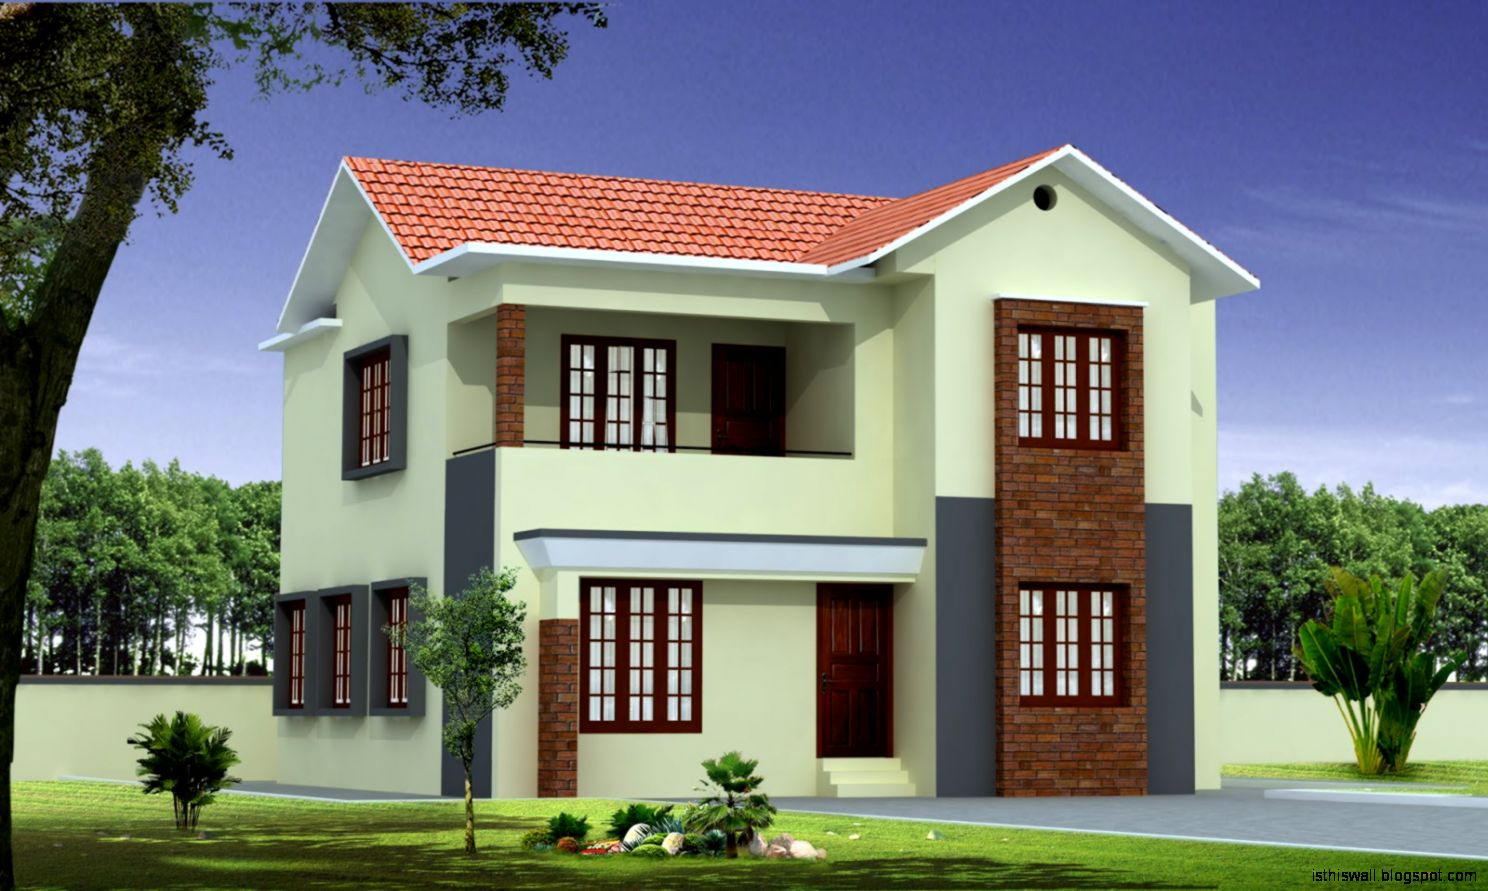 Latest Aupiais House Design By Site Interior Design Galleries And